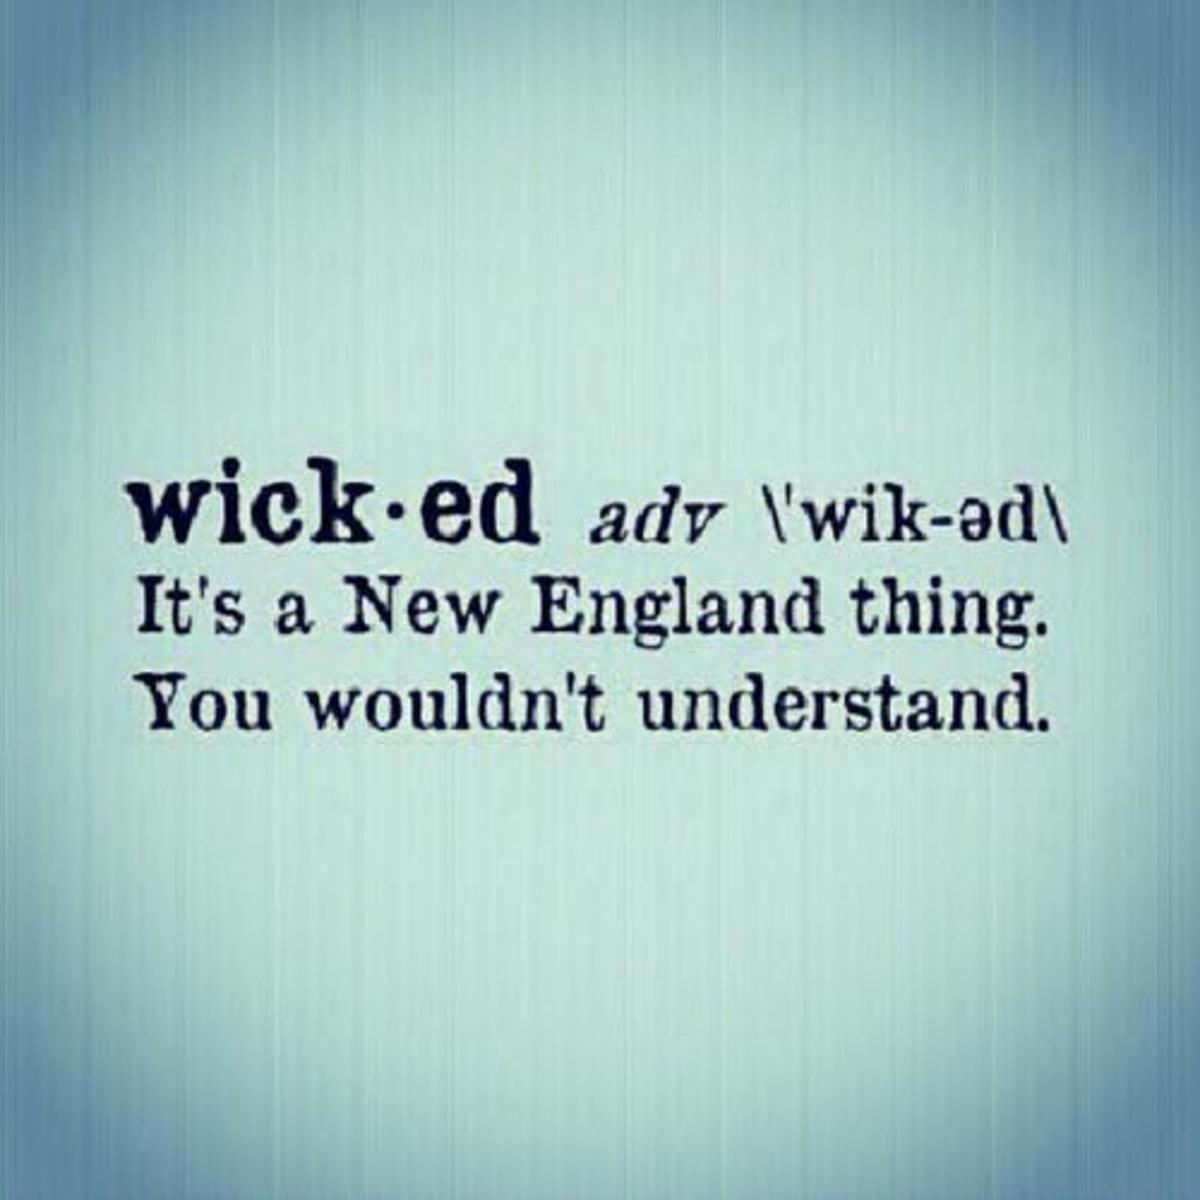 Wicked Slang Origin: Why Does New England Say